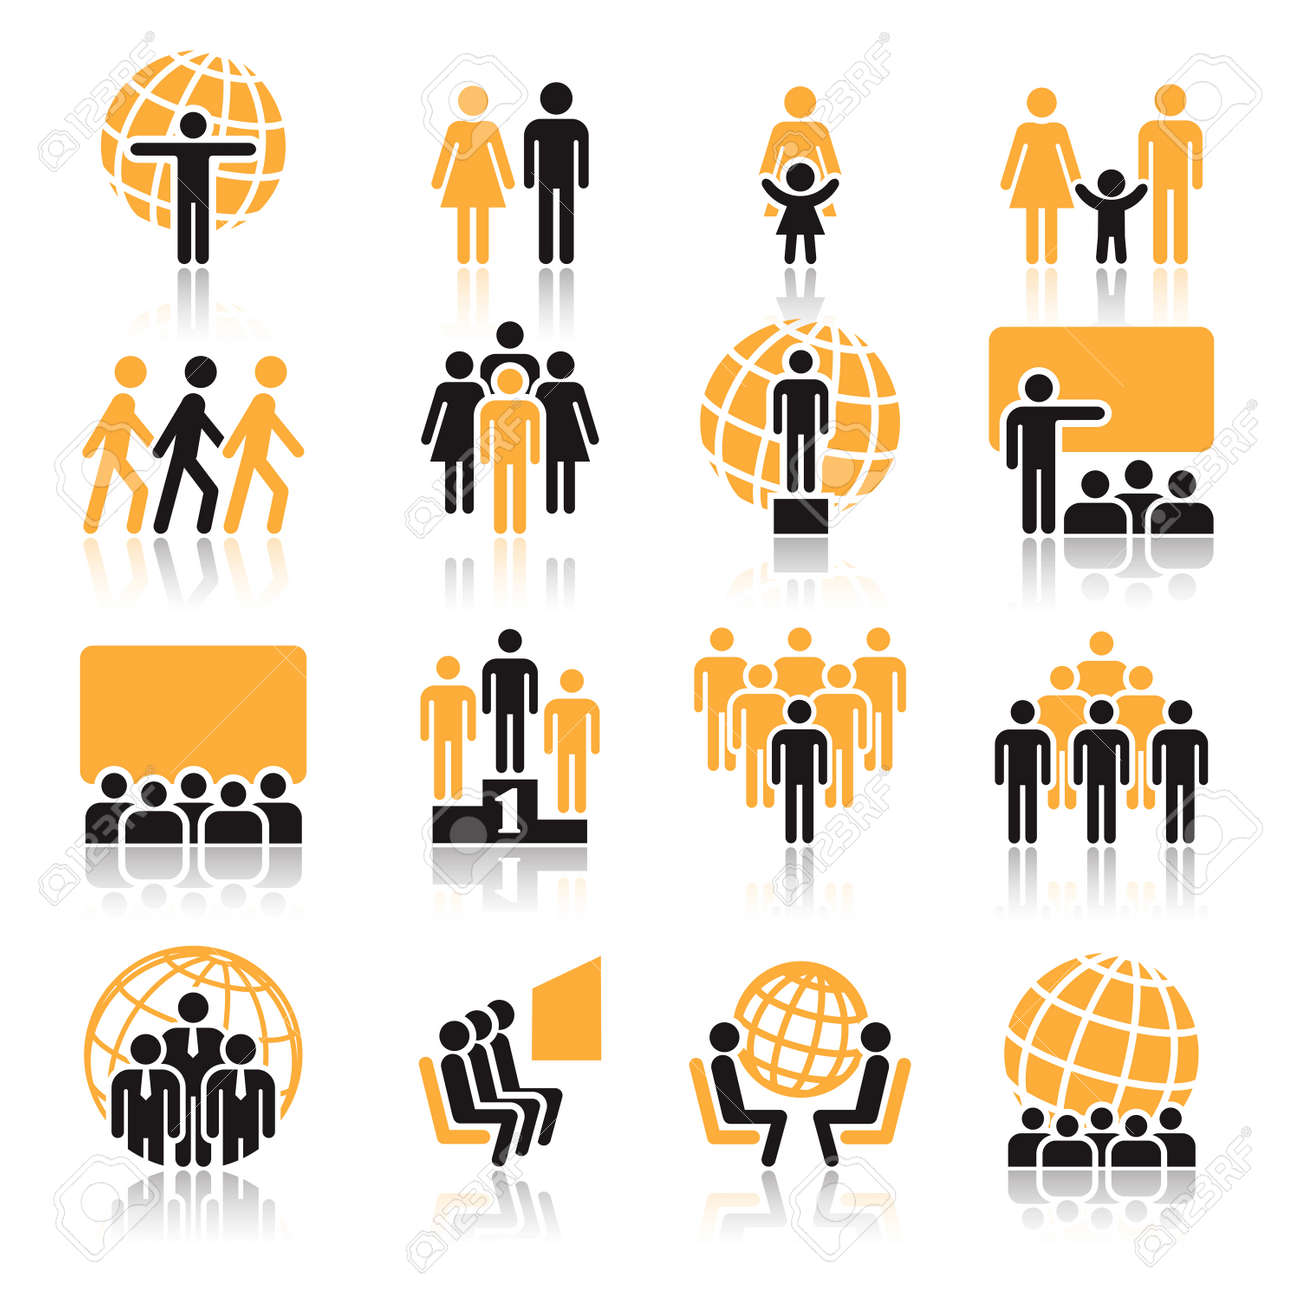 People, collection of orange and black icons over white background Standard-Bild - 24541036